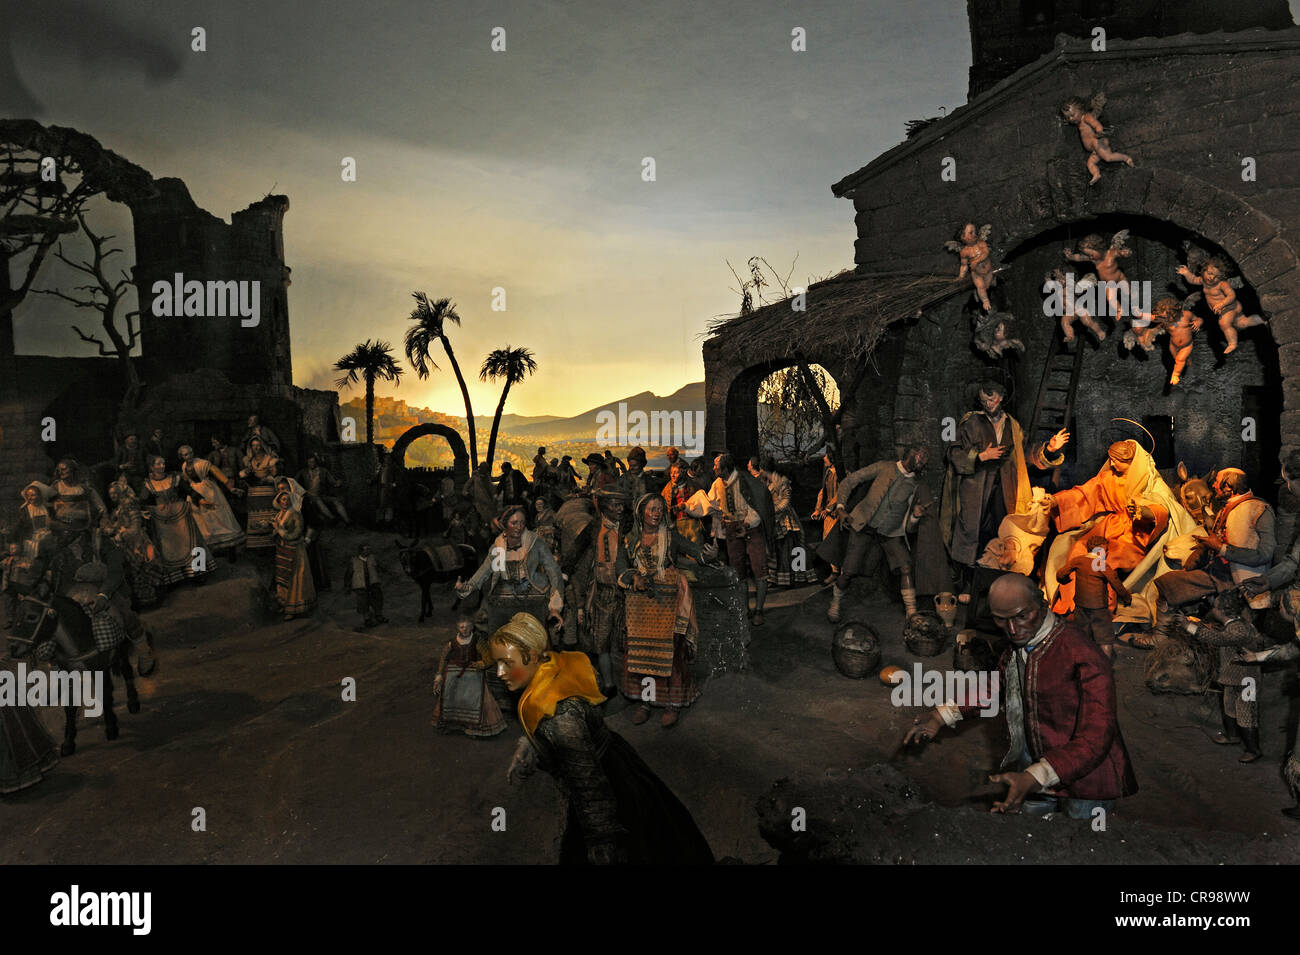 Crib collection, Adoration of the shepherds and the people in the Gulf of Naples, overlooking Mount Vesuvius in - Stock Image